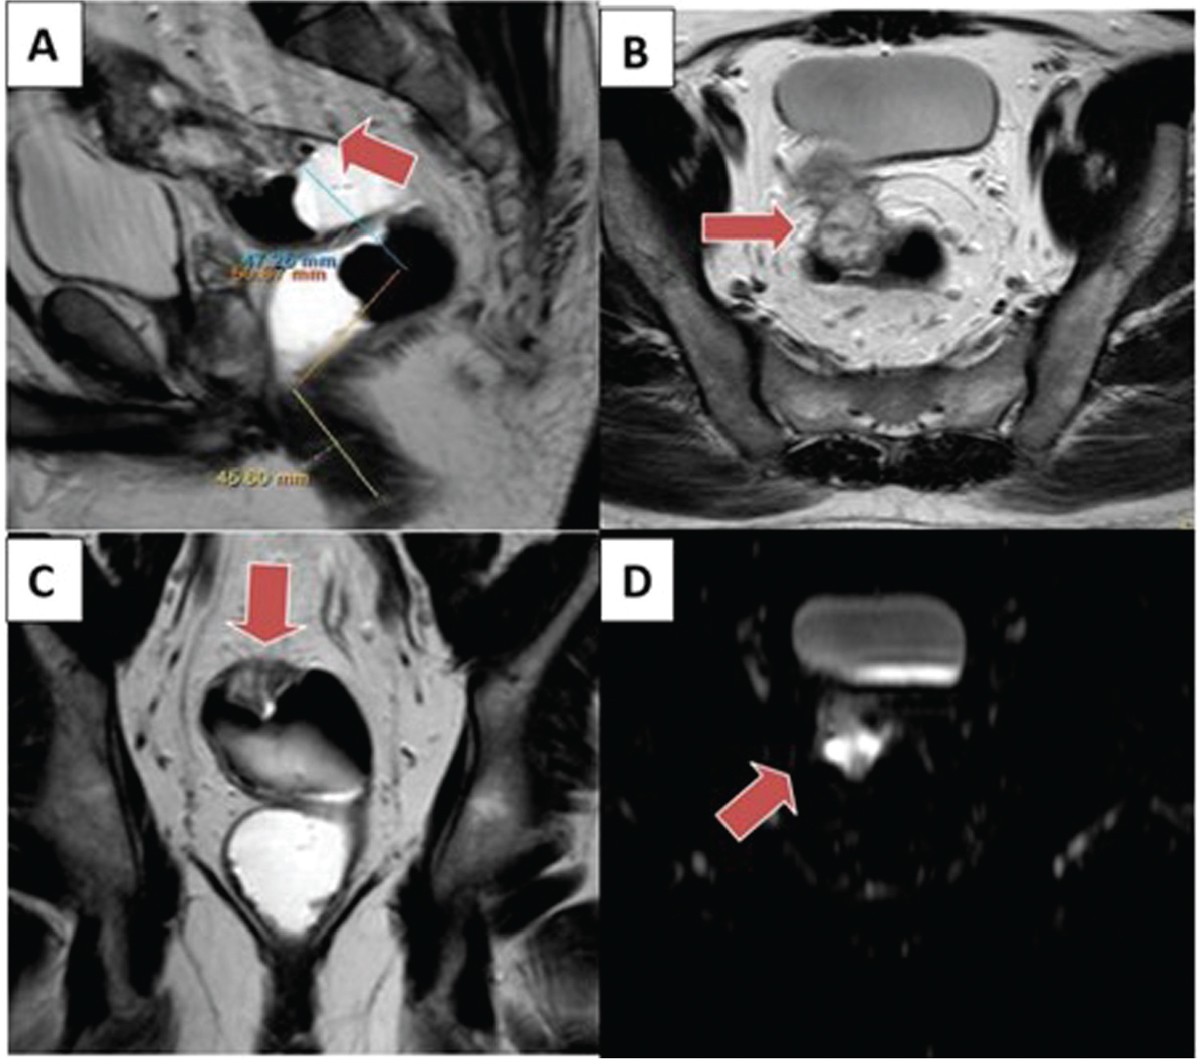 Figure 3 Case 3. (a) Sagittal T2-weighted images show a rectosigmoid mass involving upper rectum with about 15 cm from anal verge. (b) Axial T2-weighted images show endophytic mass of intermediate signal intensity infiltrating rectal wall between 11 o'clock and 12 o'clock position in circumferential location and invading mesorectal fascia to reach to anterior peritoneum. (d) Coronal T2-weighted images show an upper rectal mass and perirectal fat with no evidence of EXMVI or perirectal lymph node. (e) Diffusion-weighted image shows rectal mass of restrictive diffusion that invades mesorectal fascia.